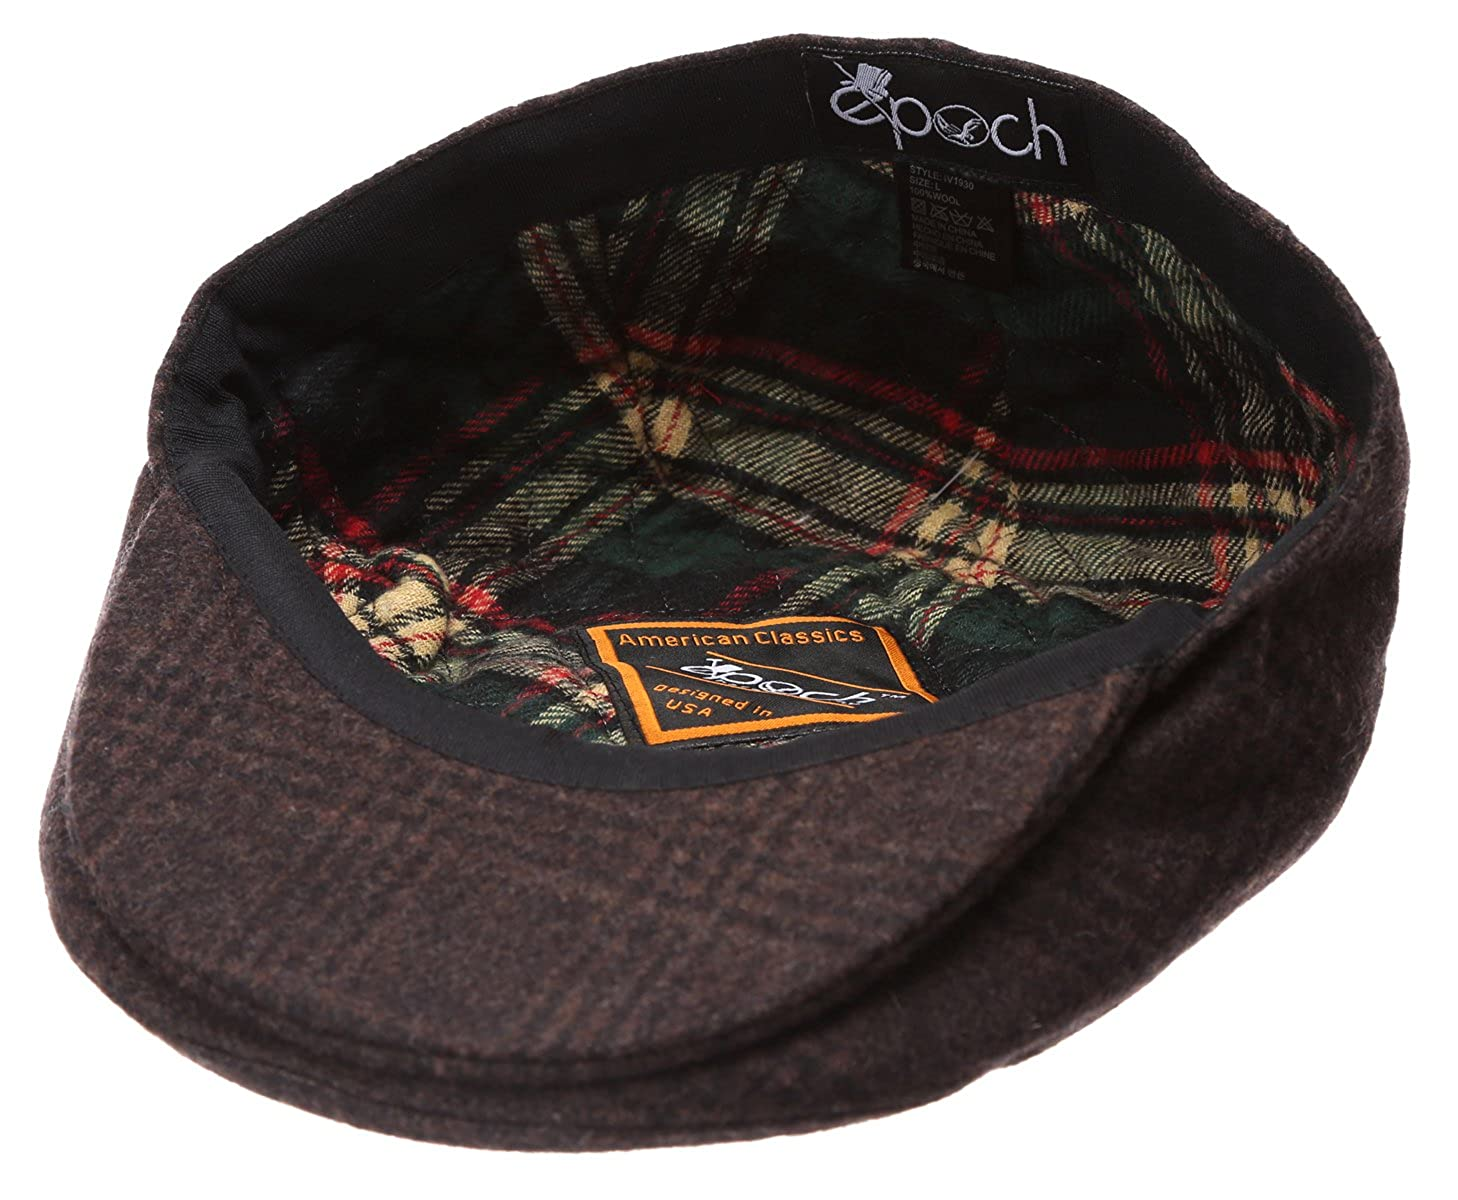 6687901f Epoch Men's Winter Collection Wool Plaid Flat Newsboy Ivy Hat with Socks.  at Amazon Men's Clothing store: